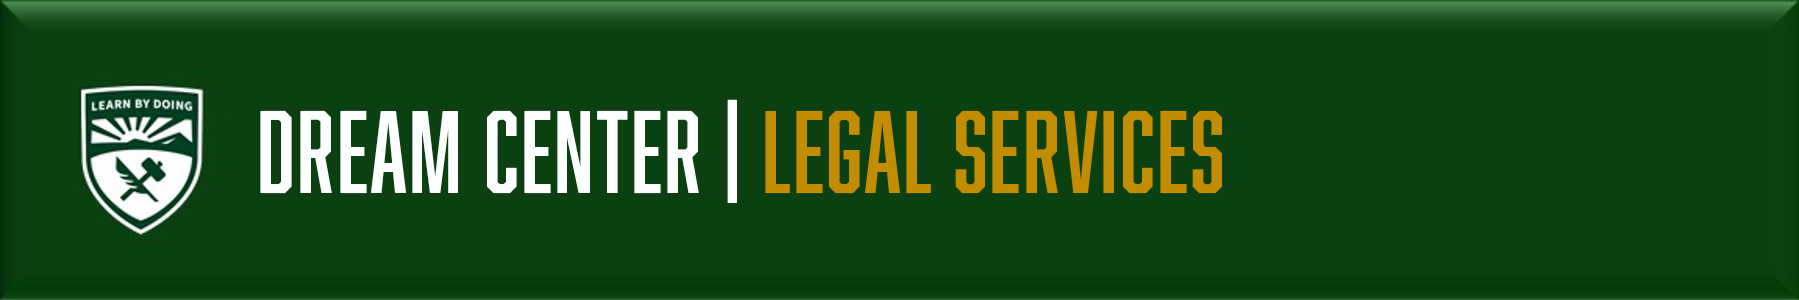 Legal Services Banner